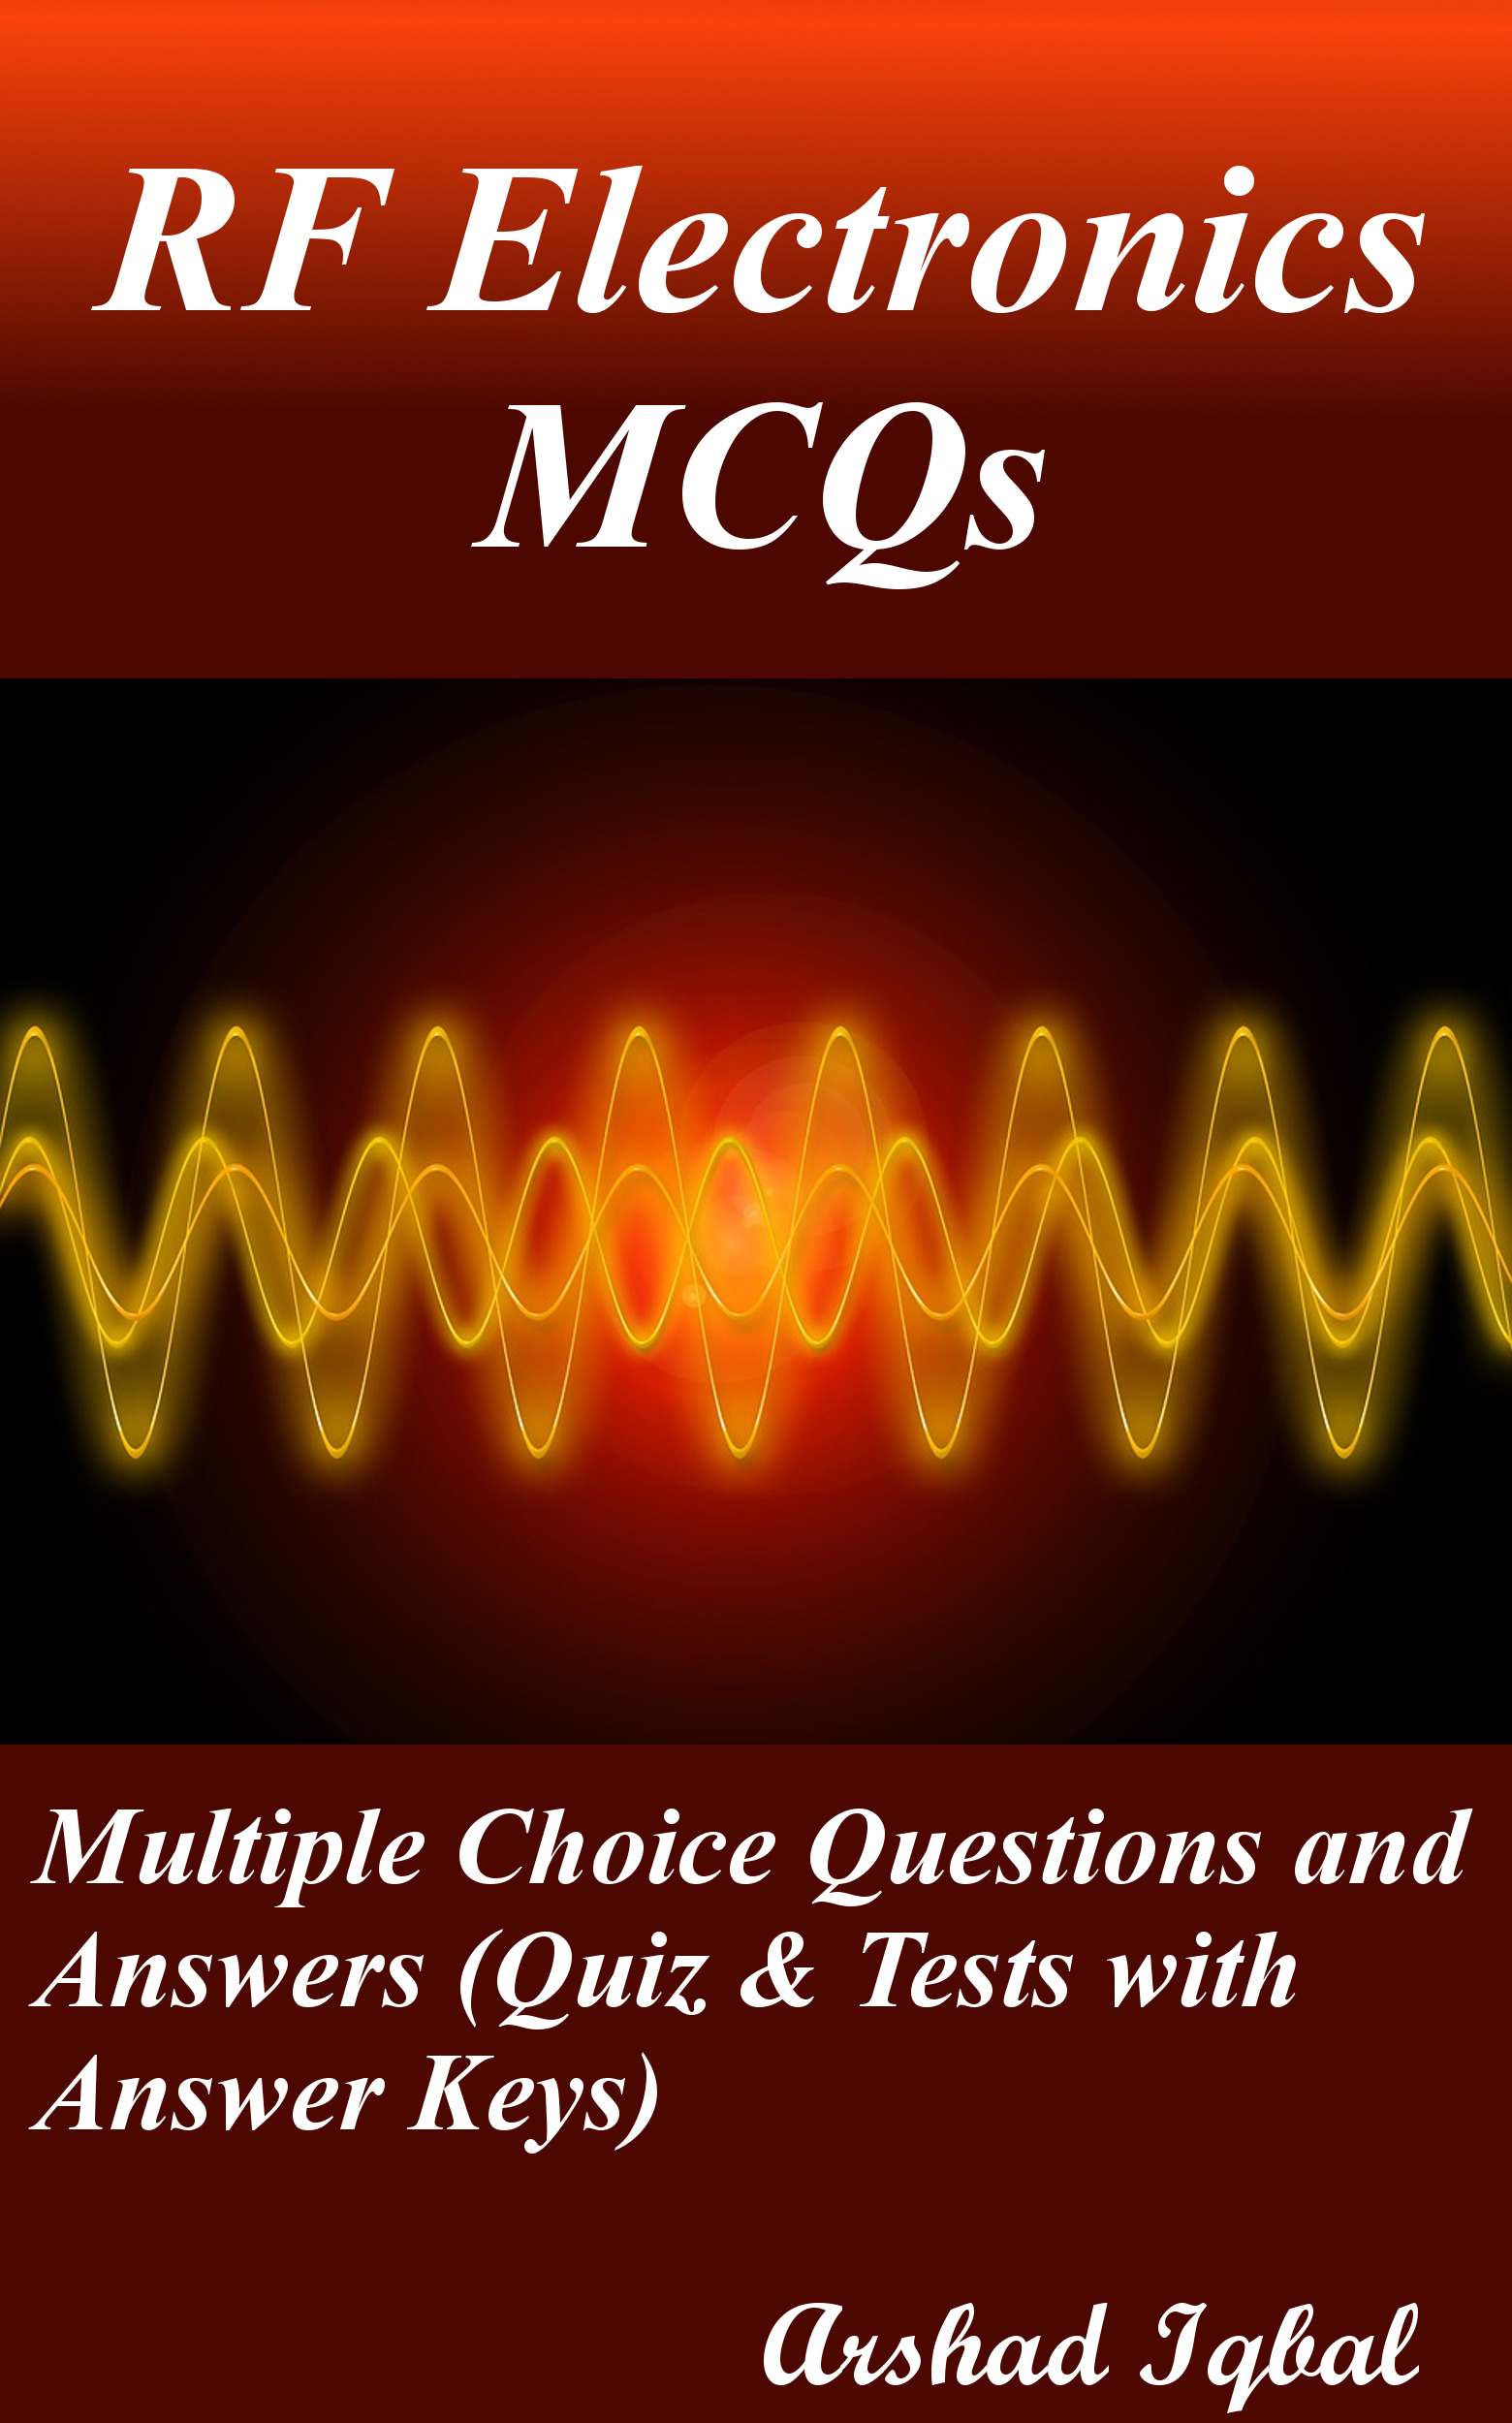 RF Electronics MCQs: Multiple Choice Questions and Answers (Quiz & Tests with Answer Keys)